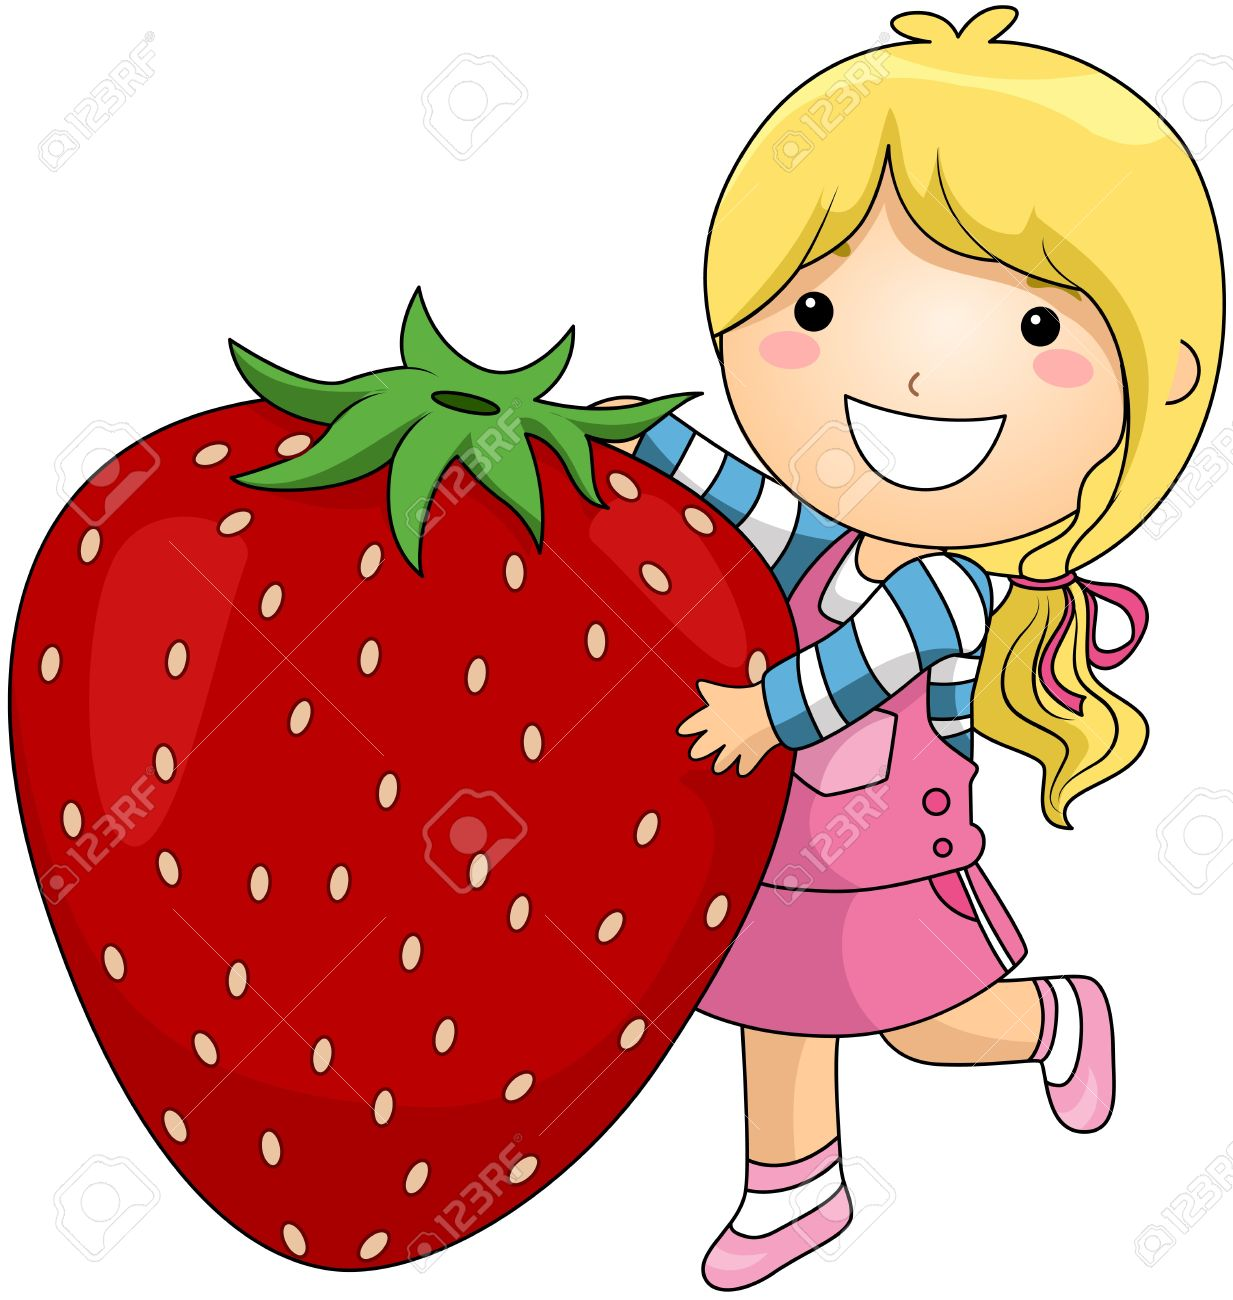 Strawberries clipart 4 strawberry. Free download best